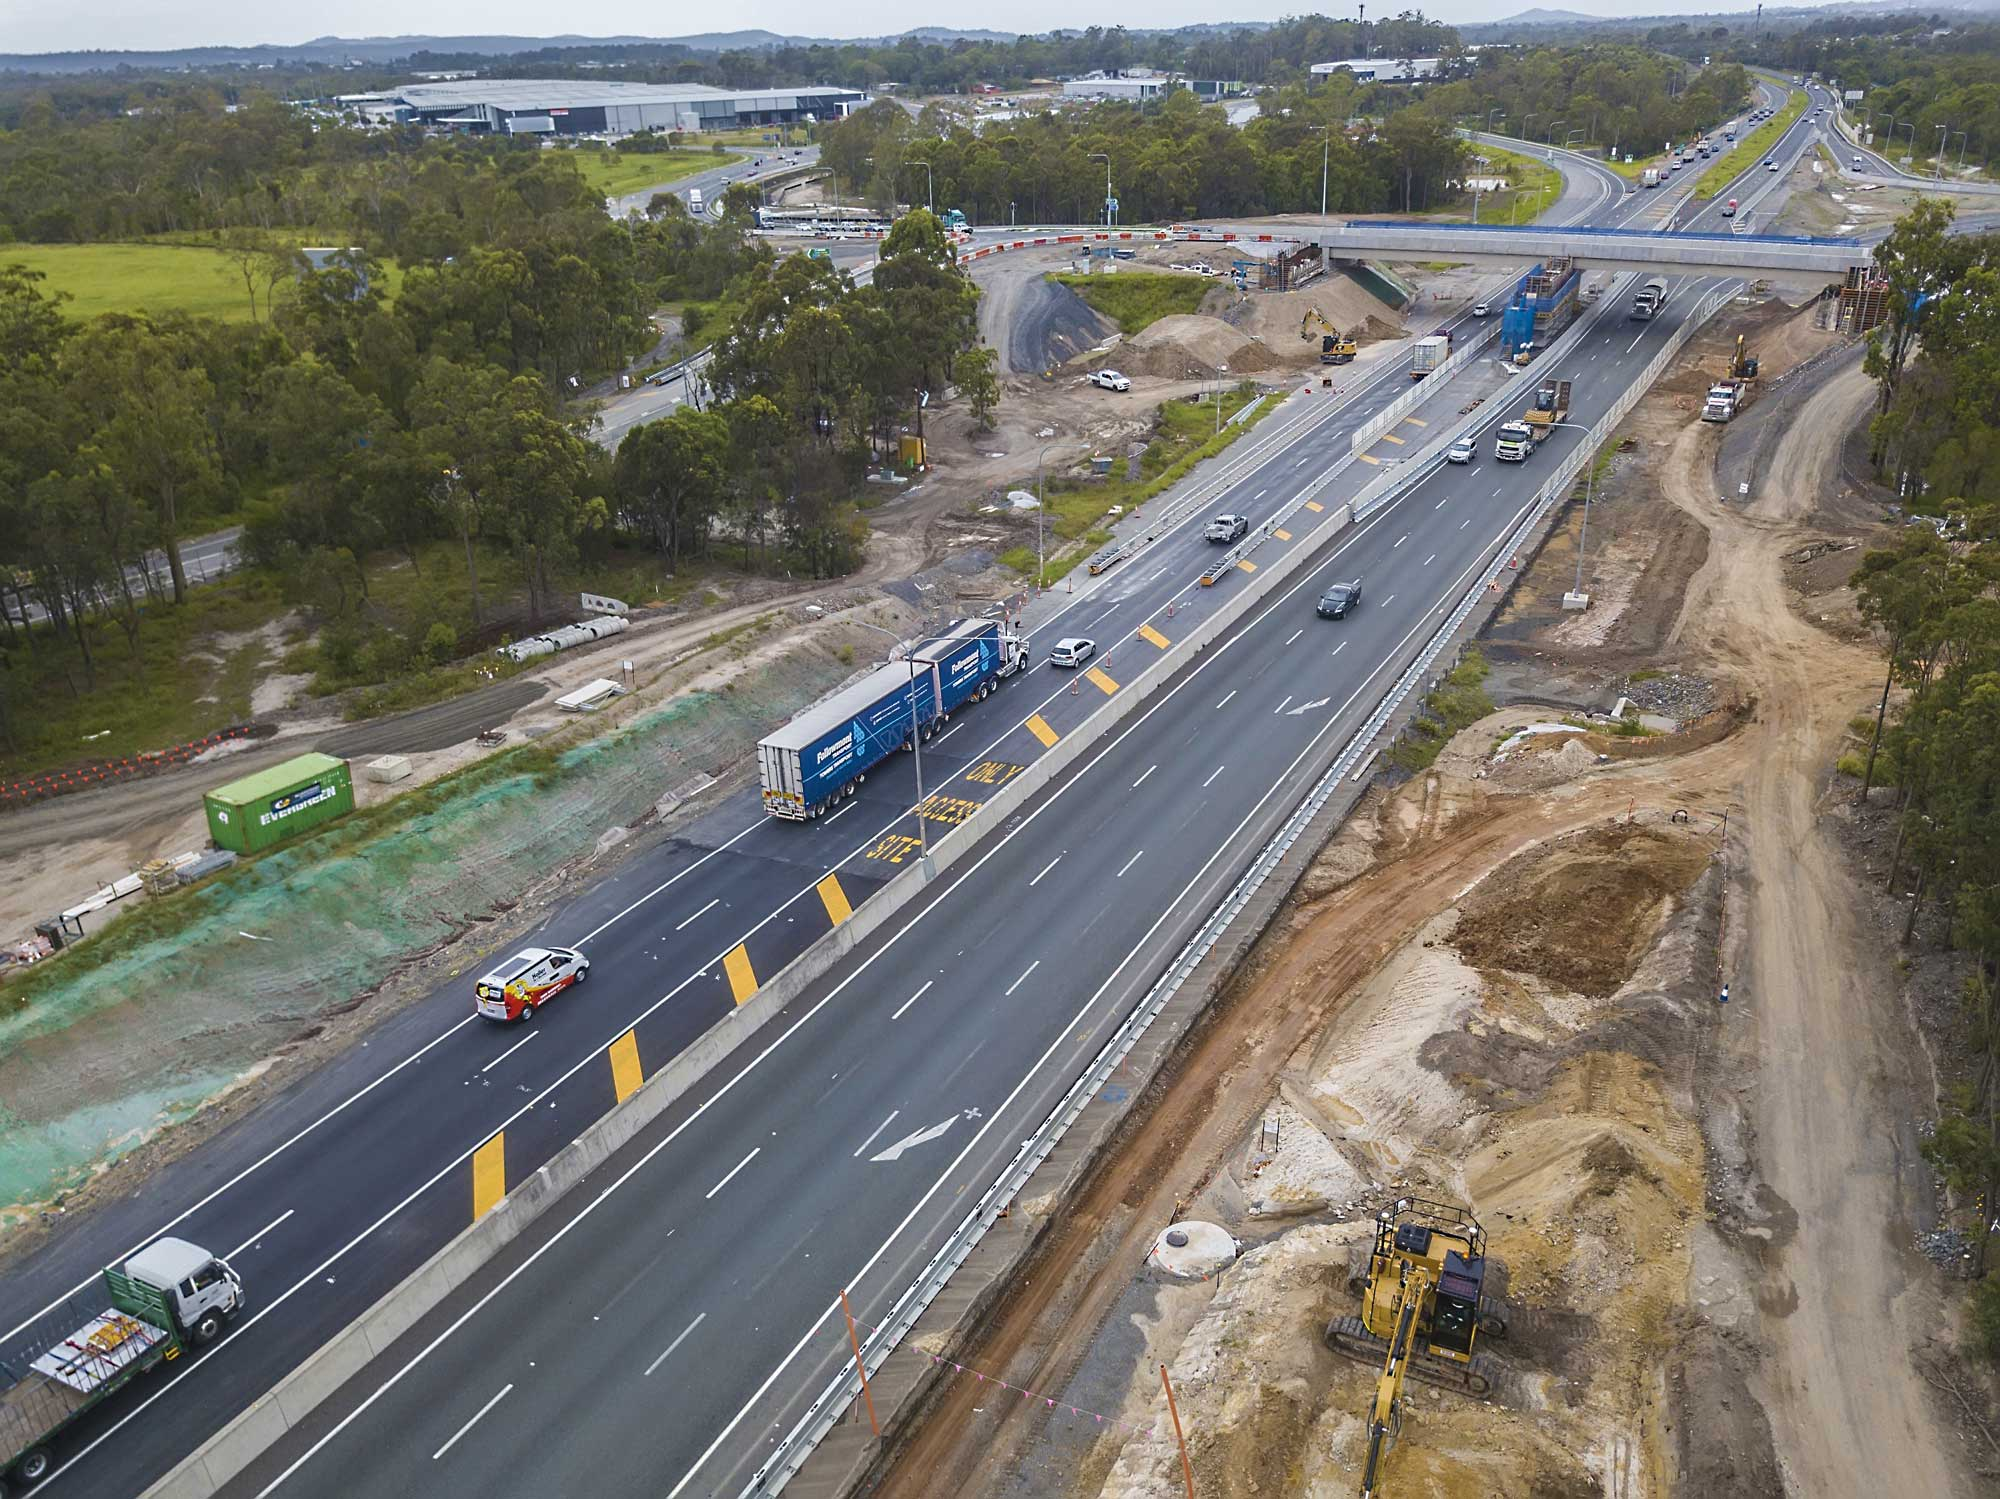 Drone Photography Brisbane - road barrier safety project Logan Motorway